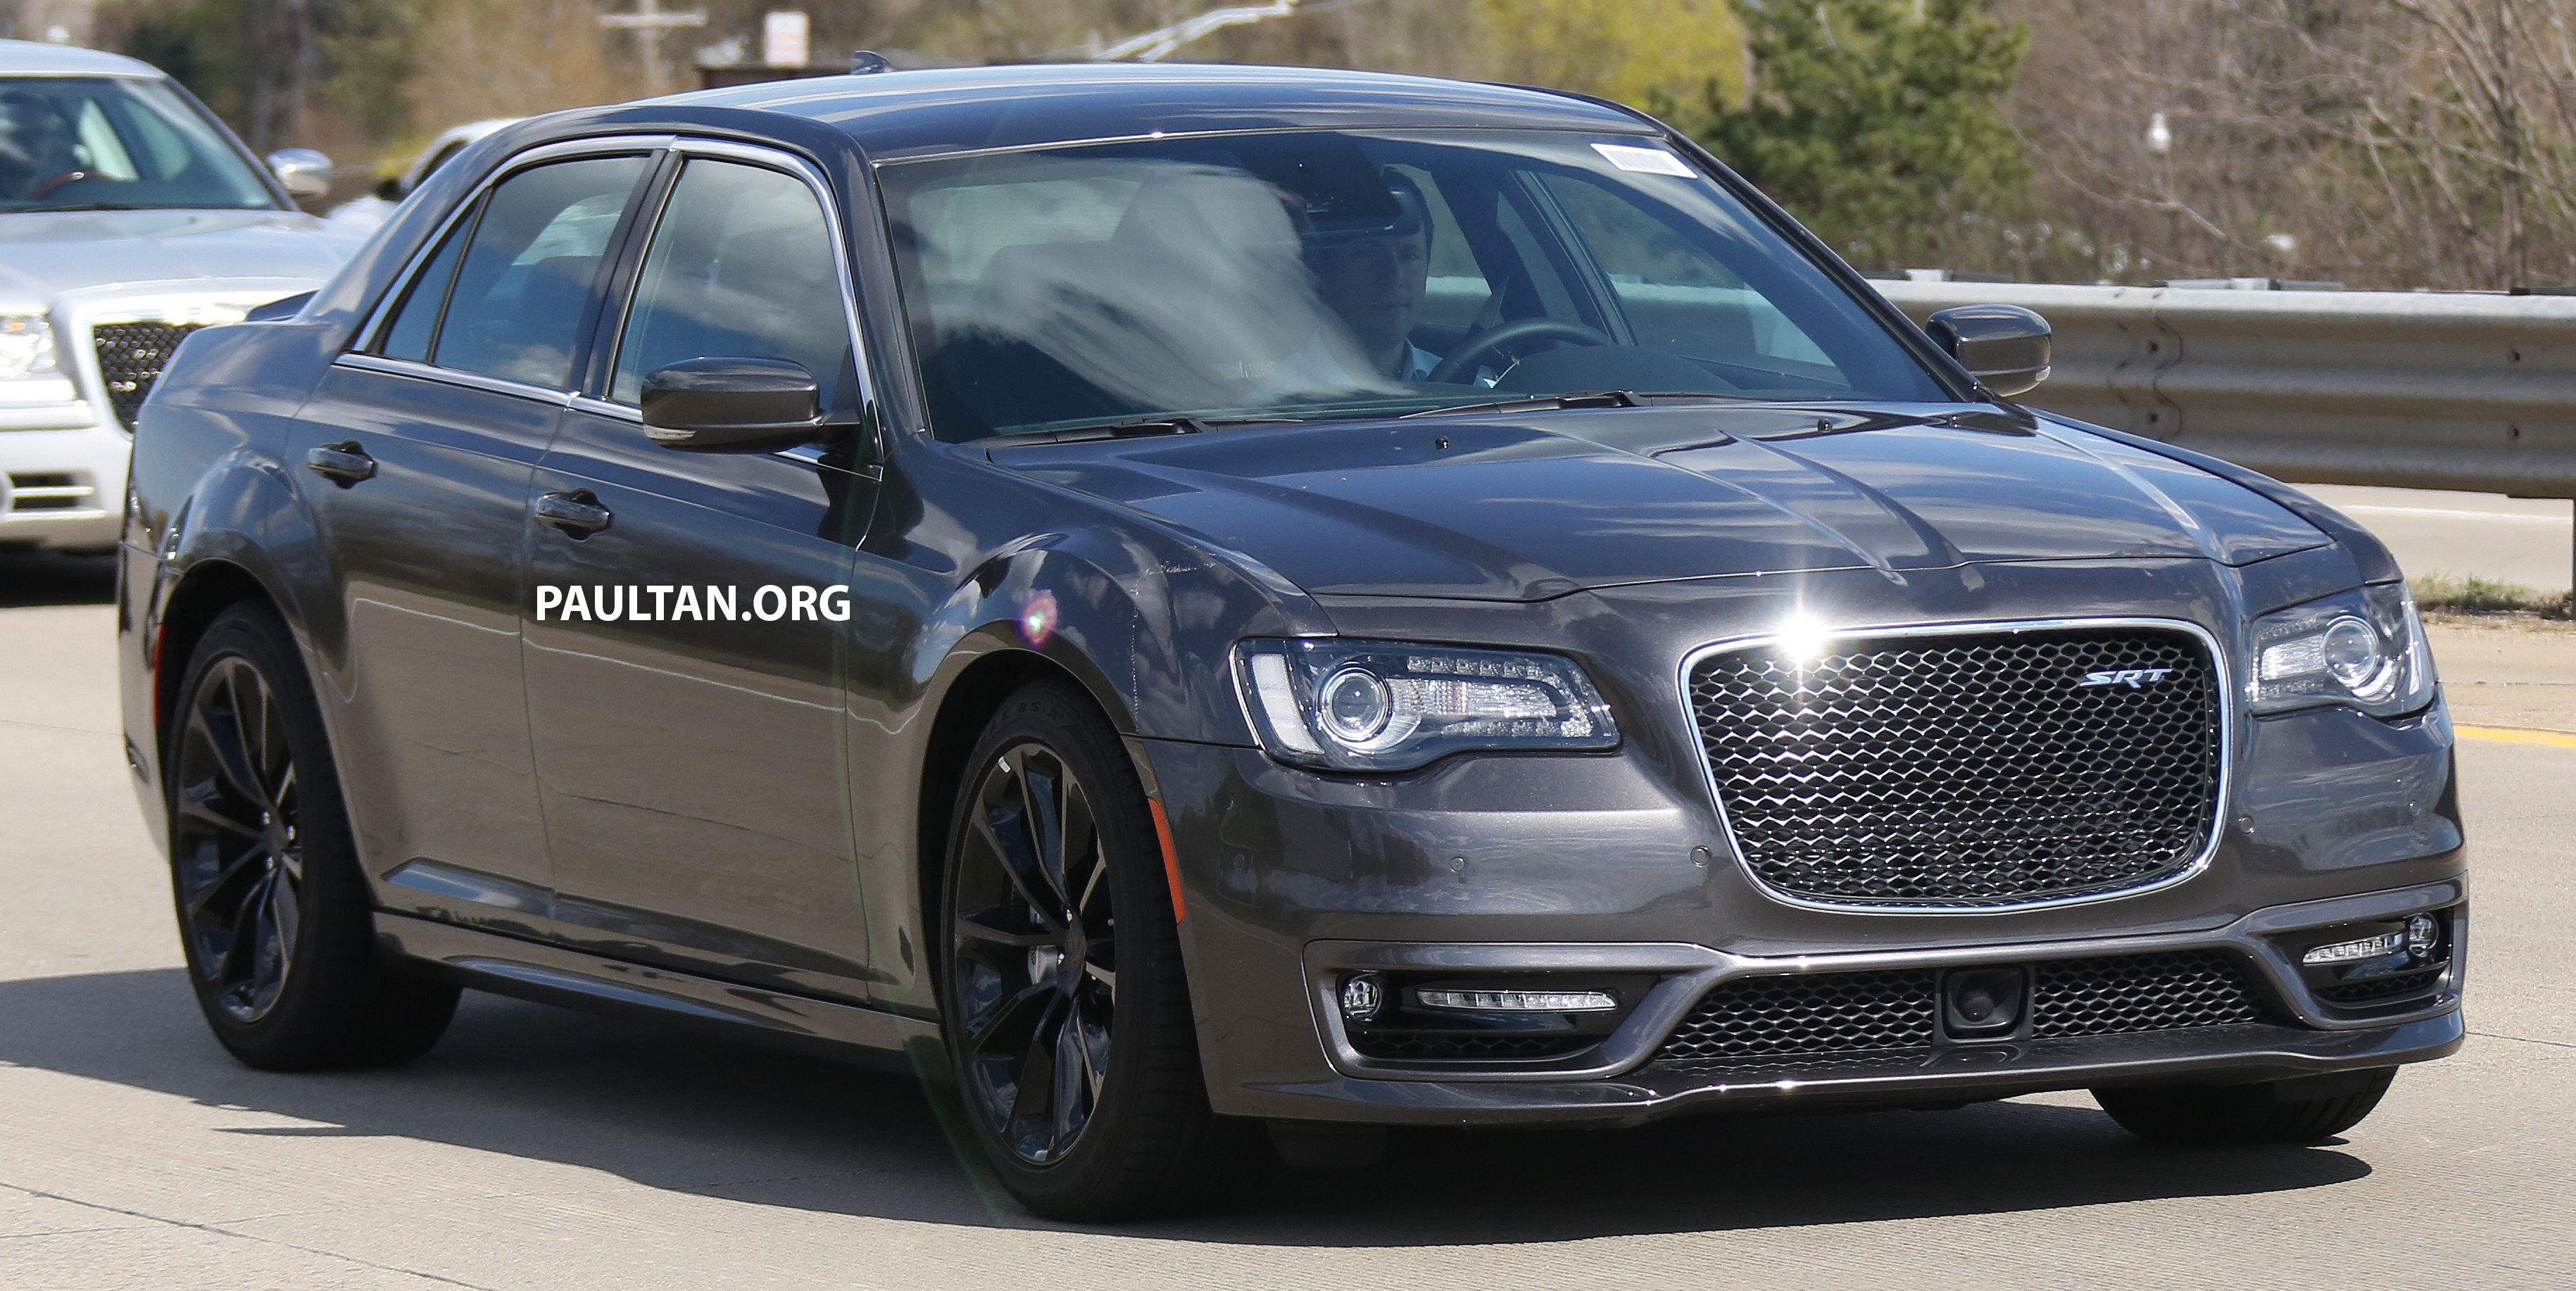 Spyshots 2016 Chrysler 300 Srt Spotted In Motown